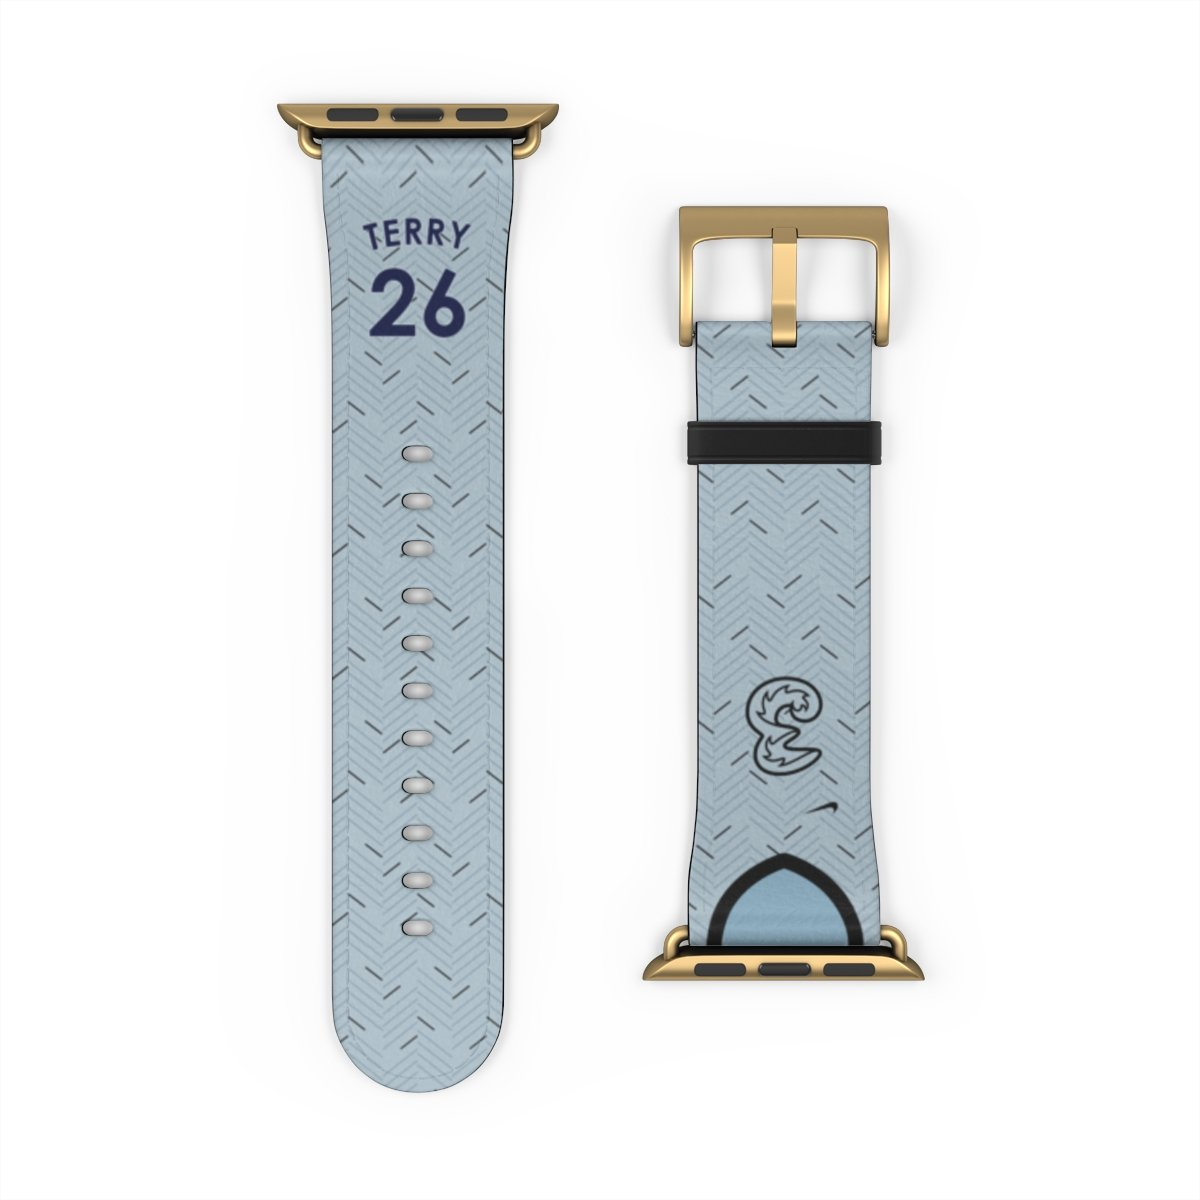 Personalised 2020/2021 Chelsea Away Kit Style Replacement iWatch Band